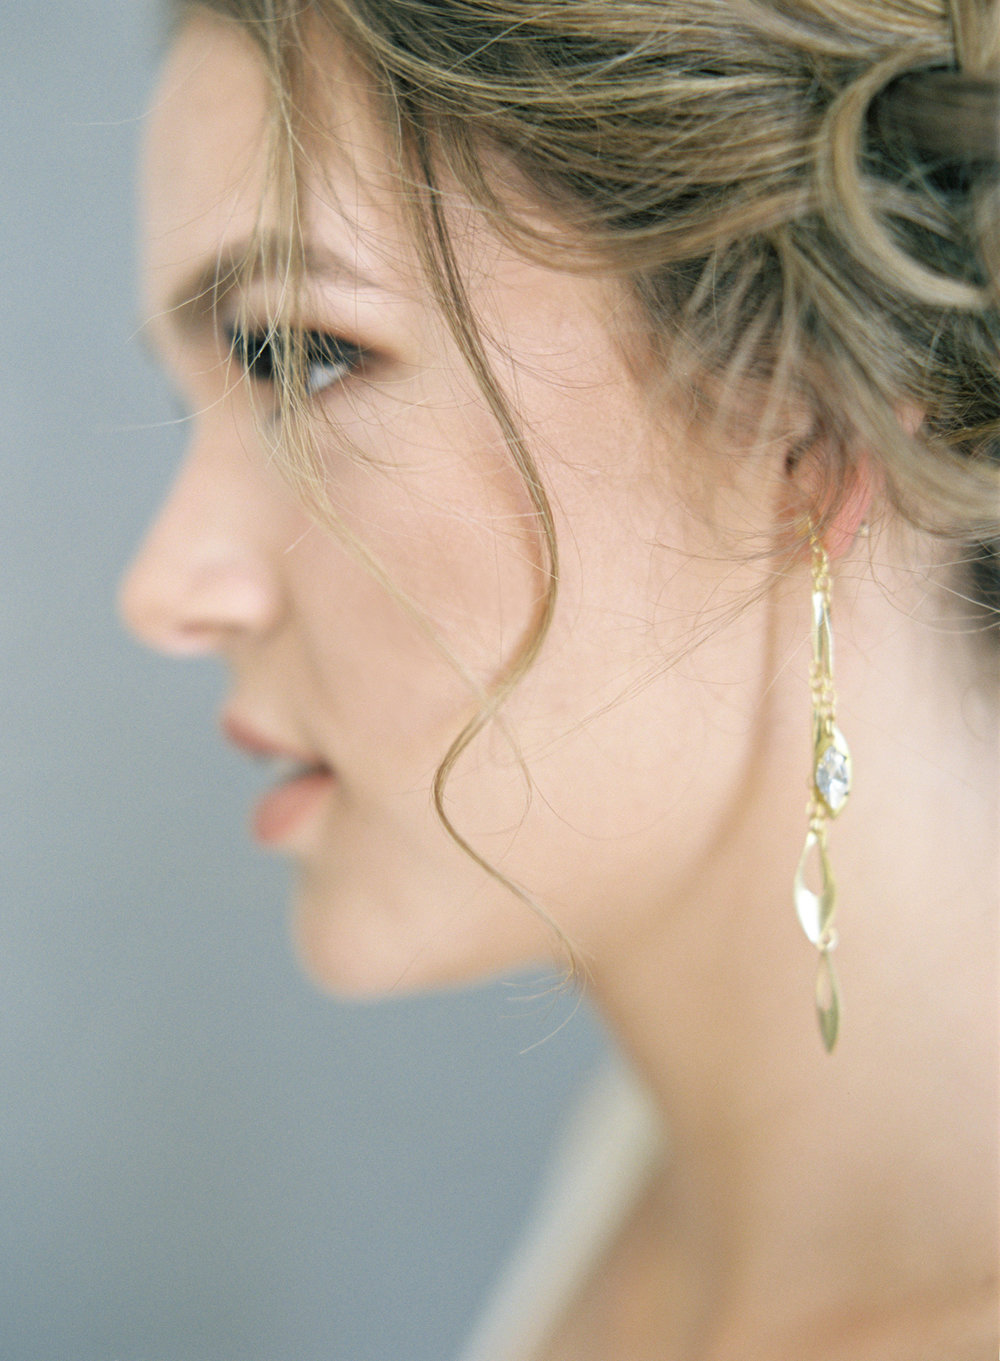 Hushed+Commotion,+Jen+Huang+2017,+Jessi+earrings,+gold+drop+with+crystal,+detail+1.jpg